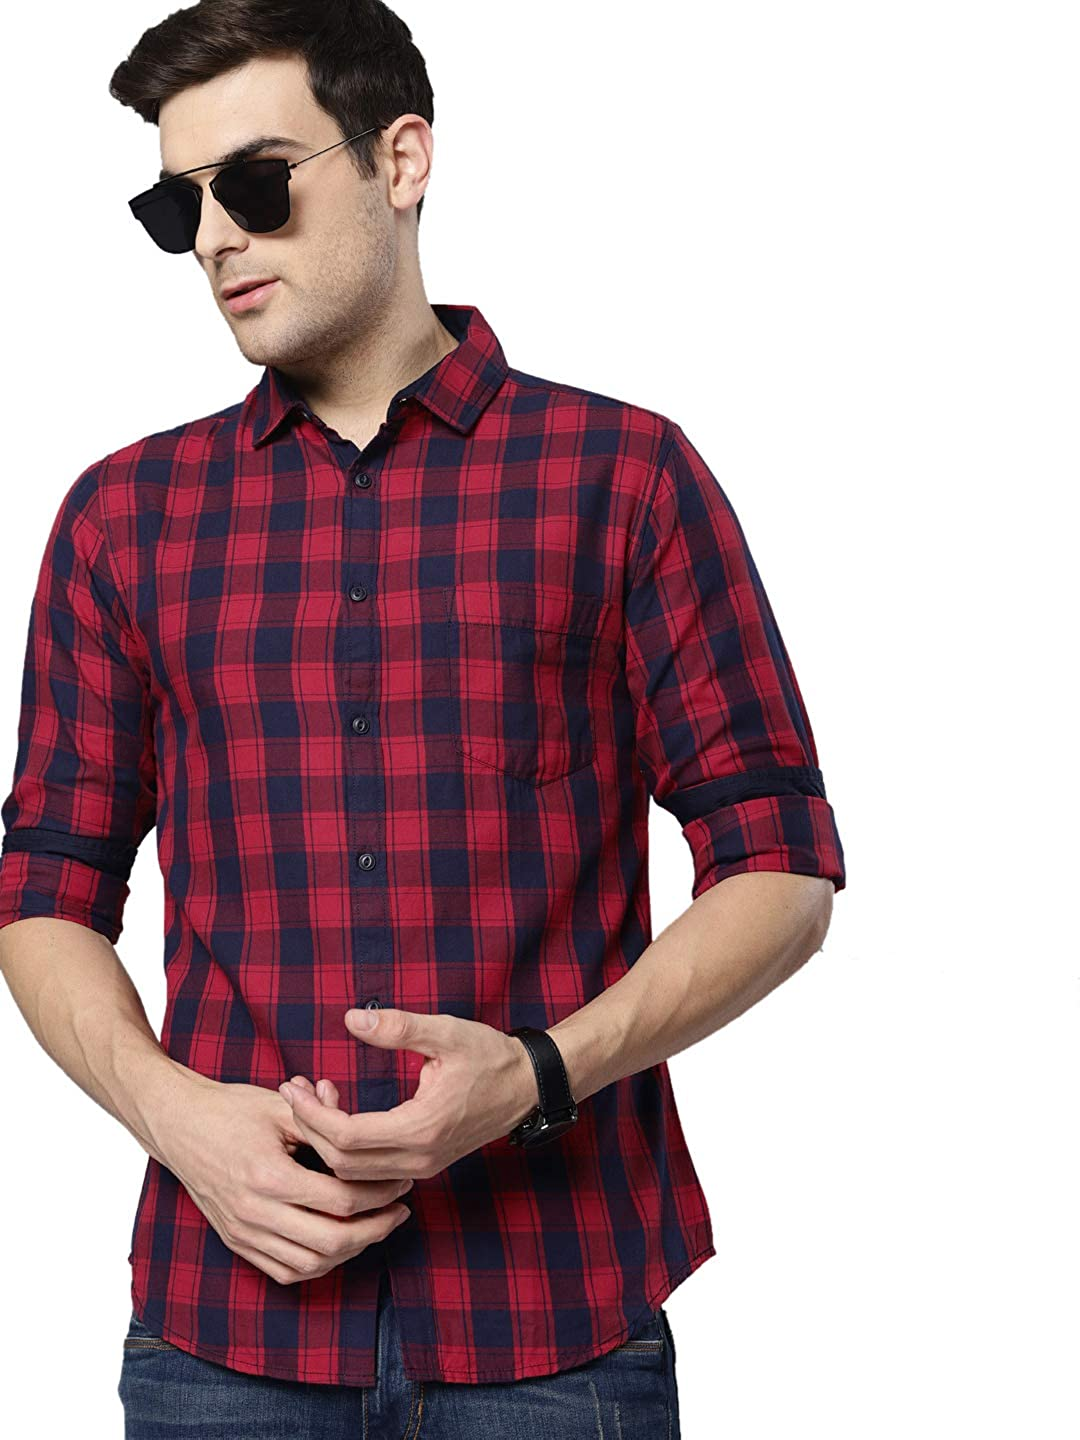 Dennis Lingo Mens Shirts up to 83% off  From RS 379 at Amazon